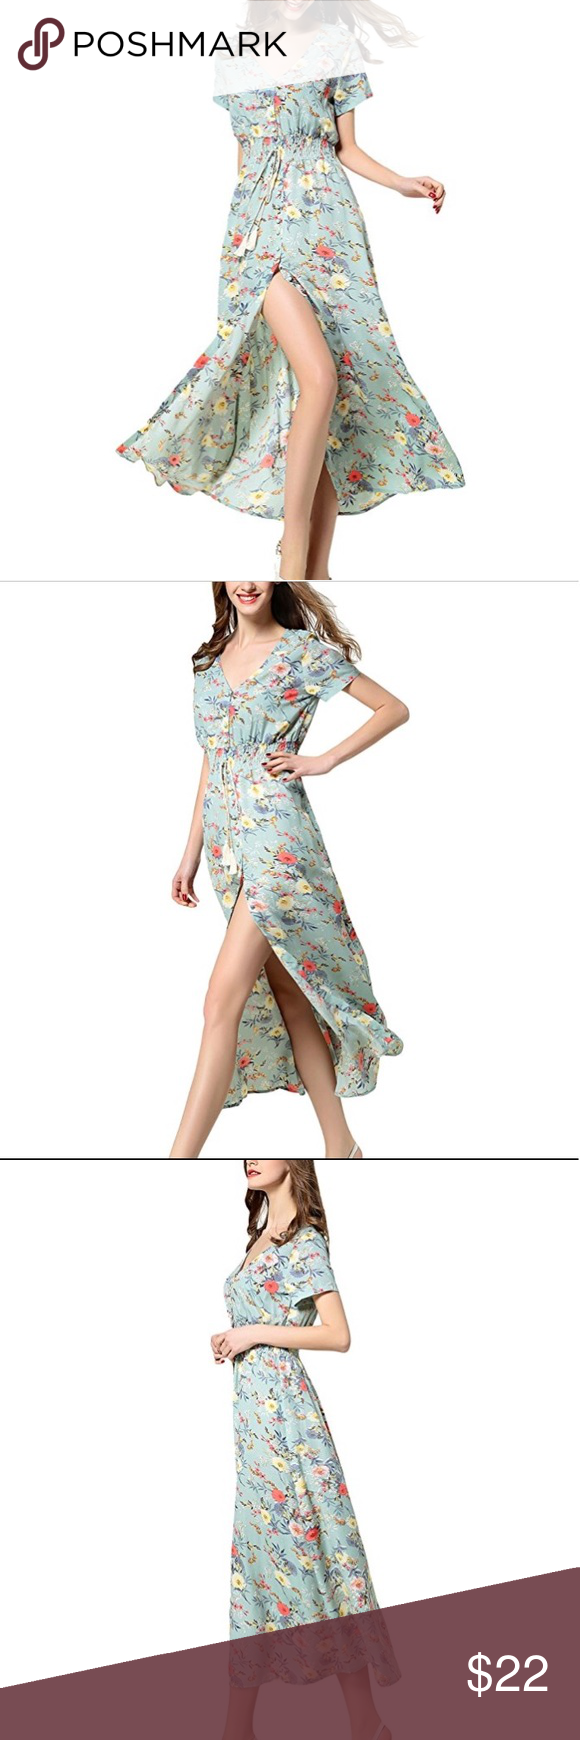 ARANEE Sexy Split Floral Beach Party Maxi Dress S ARANEE Sexy Split Floral Beach Party Maxi Dress  Size Small Chest 36.2-Waist 25.2-Length 51.9 The dress has buttons all the way from top to bottom. You can regulate how big of a split you want or if you want to open up your cleavage area more.  Buttons up all the way from top to bottom. Great option for regulating how low or high you want the cut or cleavage opening.  The dress is made of 100% soft, breathable rayon and is both machine and hand washable. Its colors will not bleed upon washing Aranee Dresses Maxi #area51partyoutfit